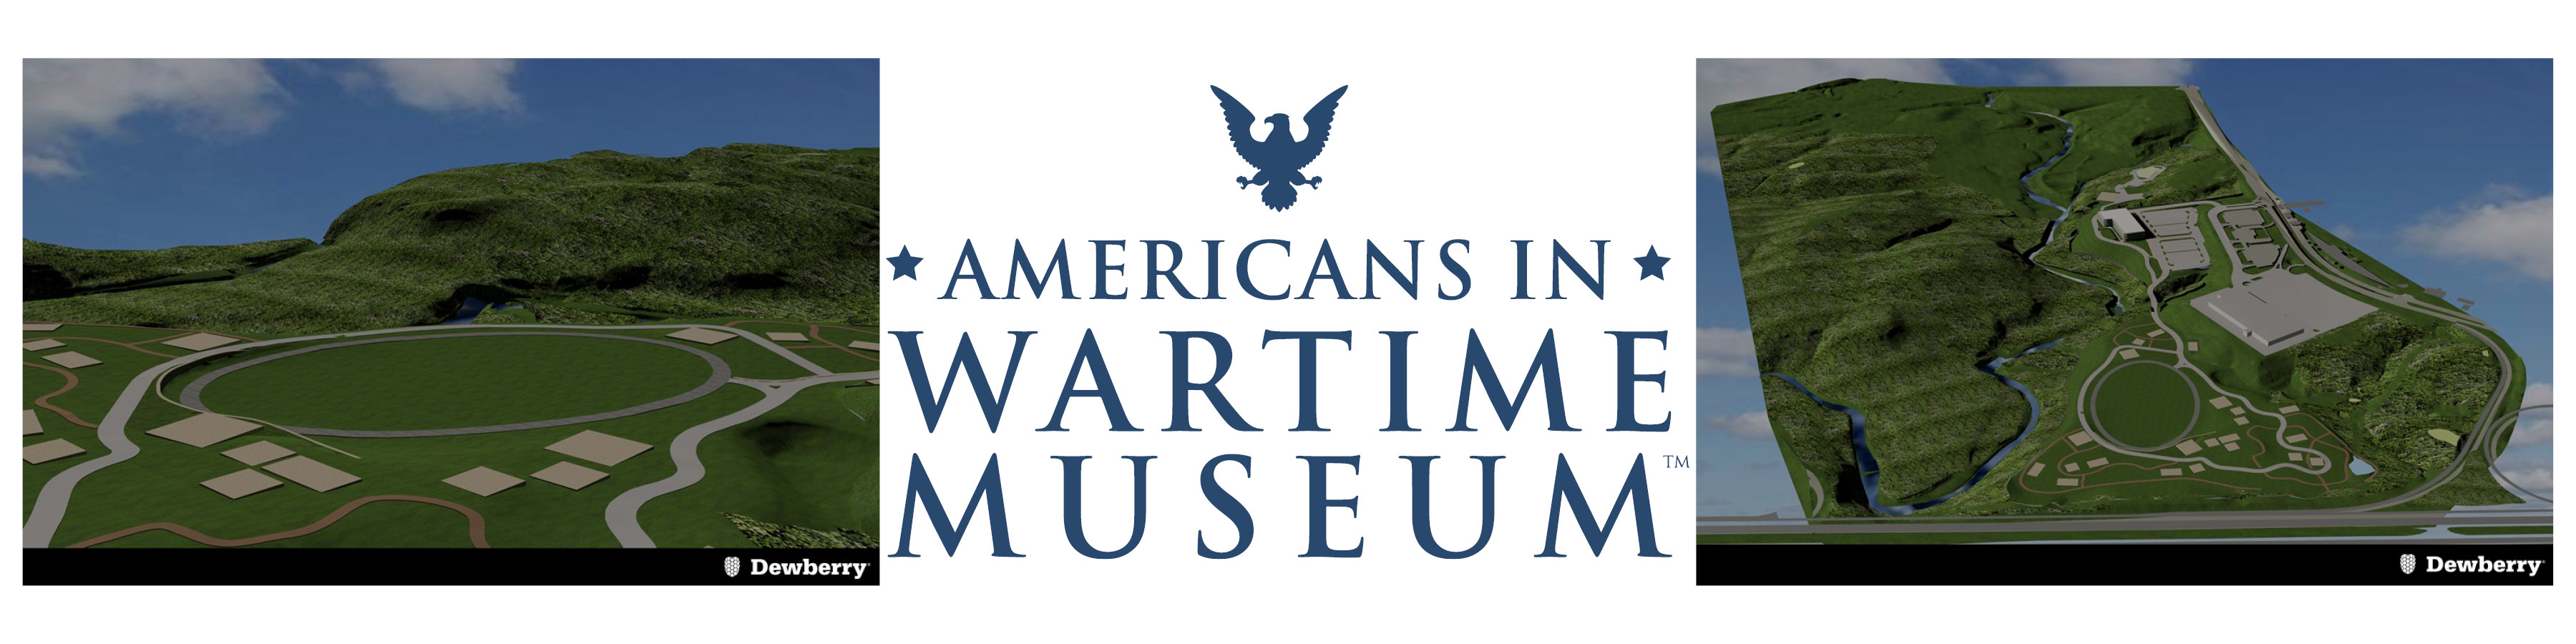 Americans In Wartime Museum